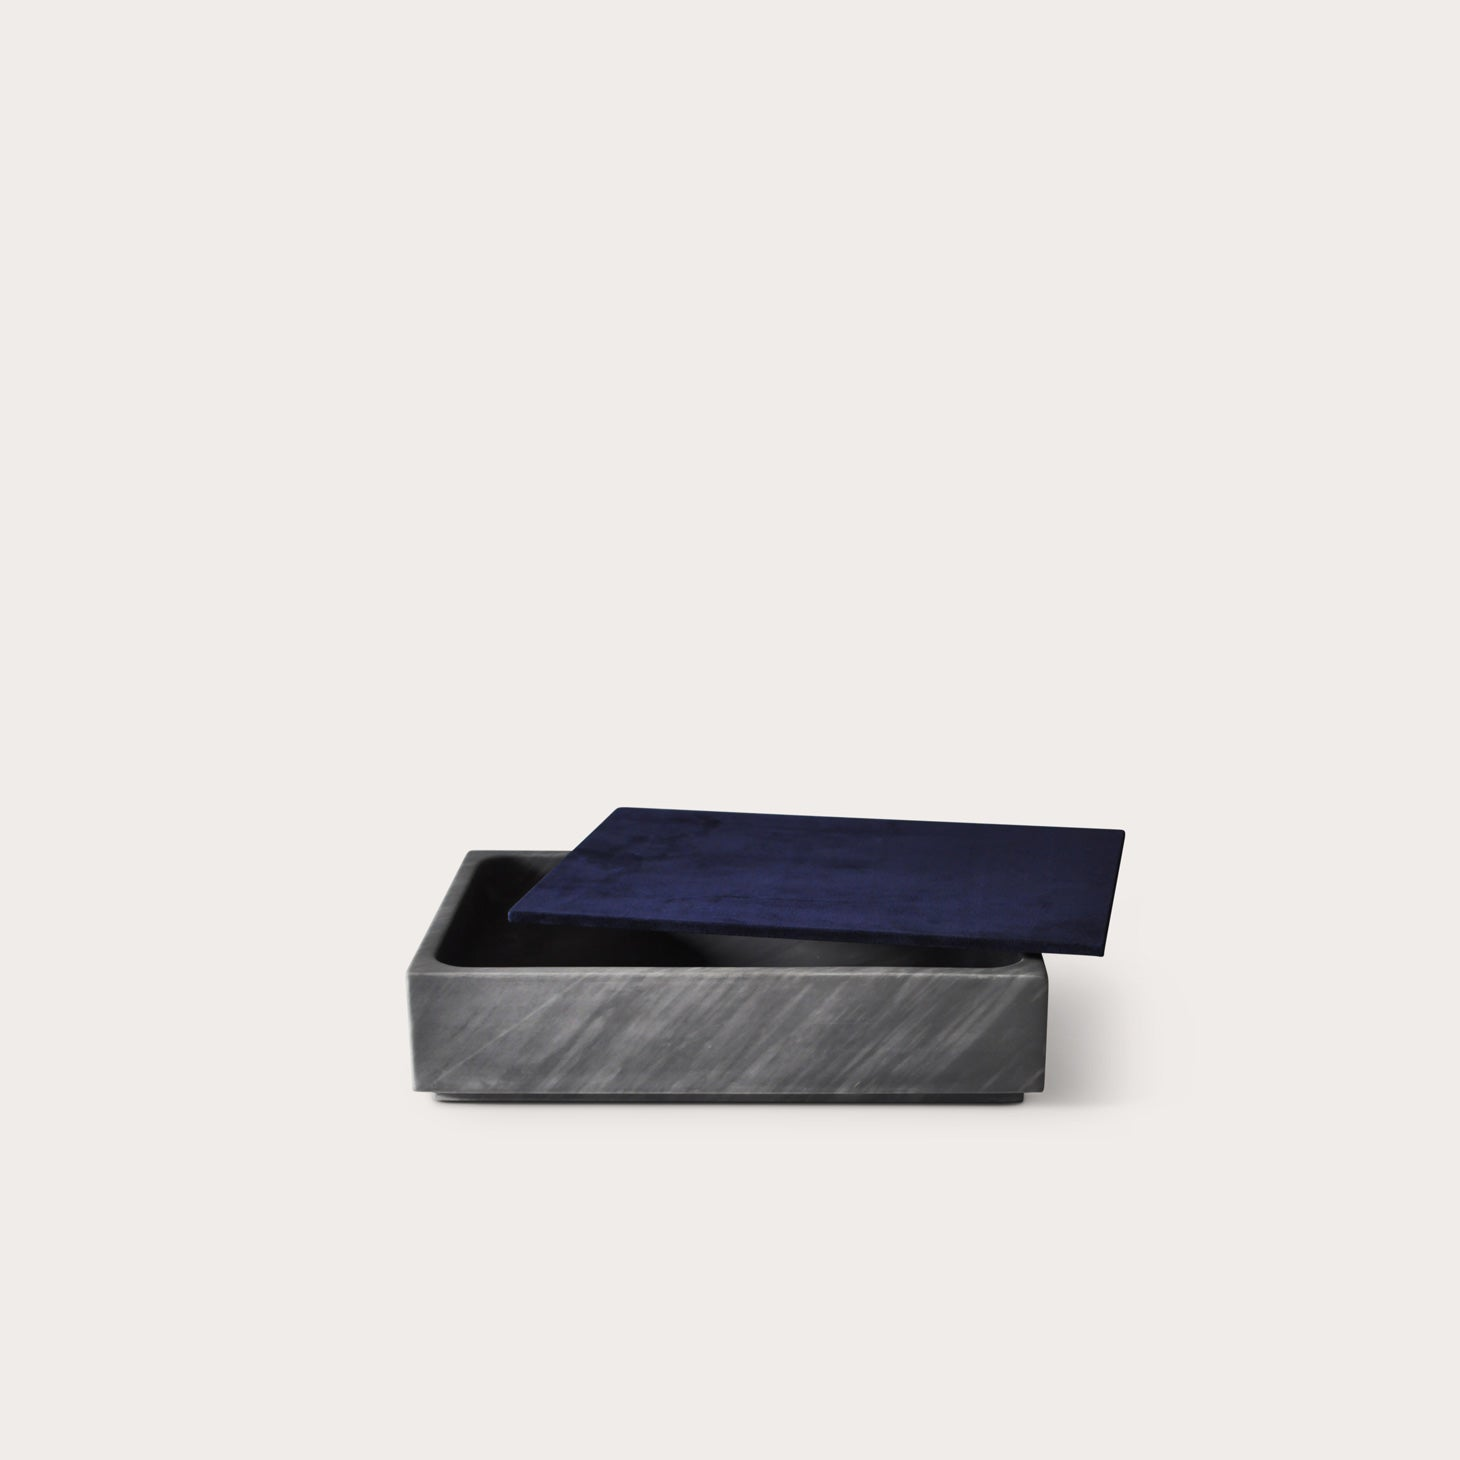 Square Box Accessories Michael Verheyden Designer Furniture Sku: 554-100-10496